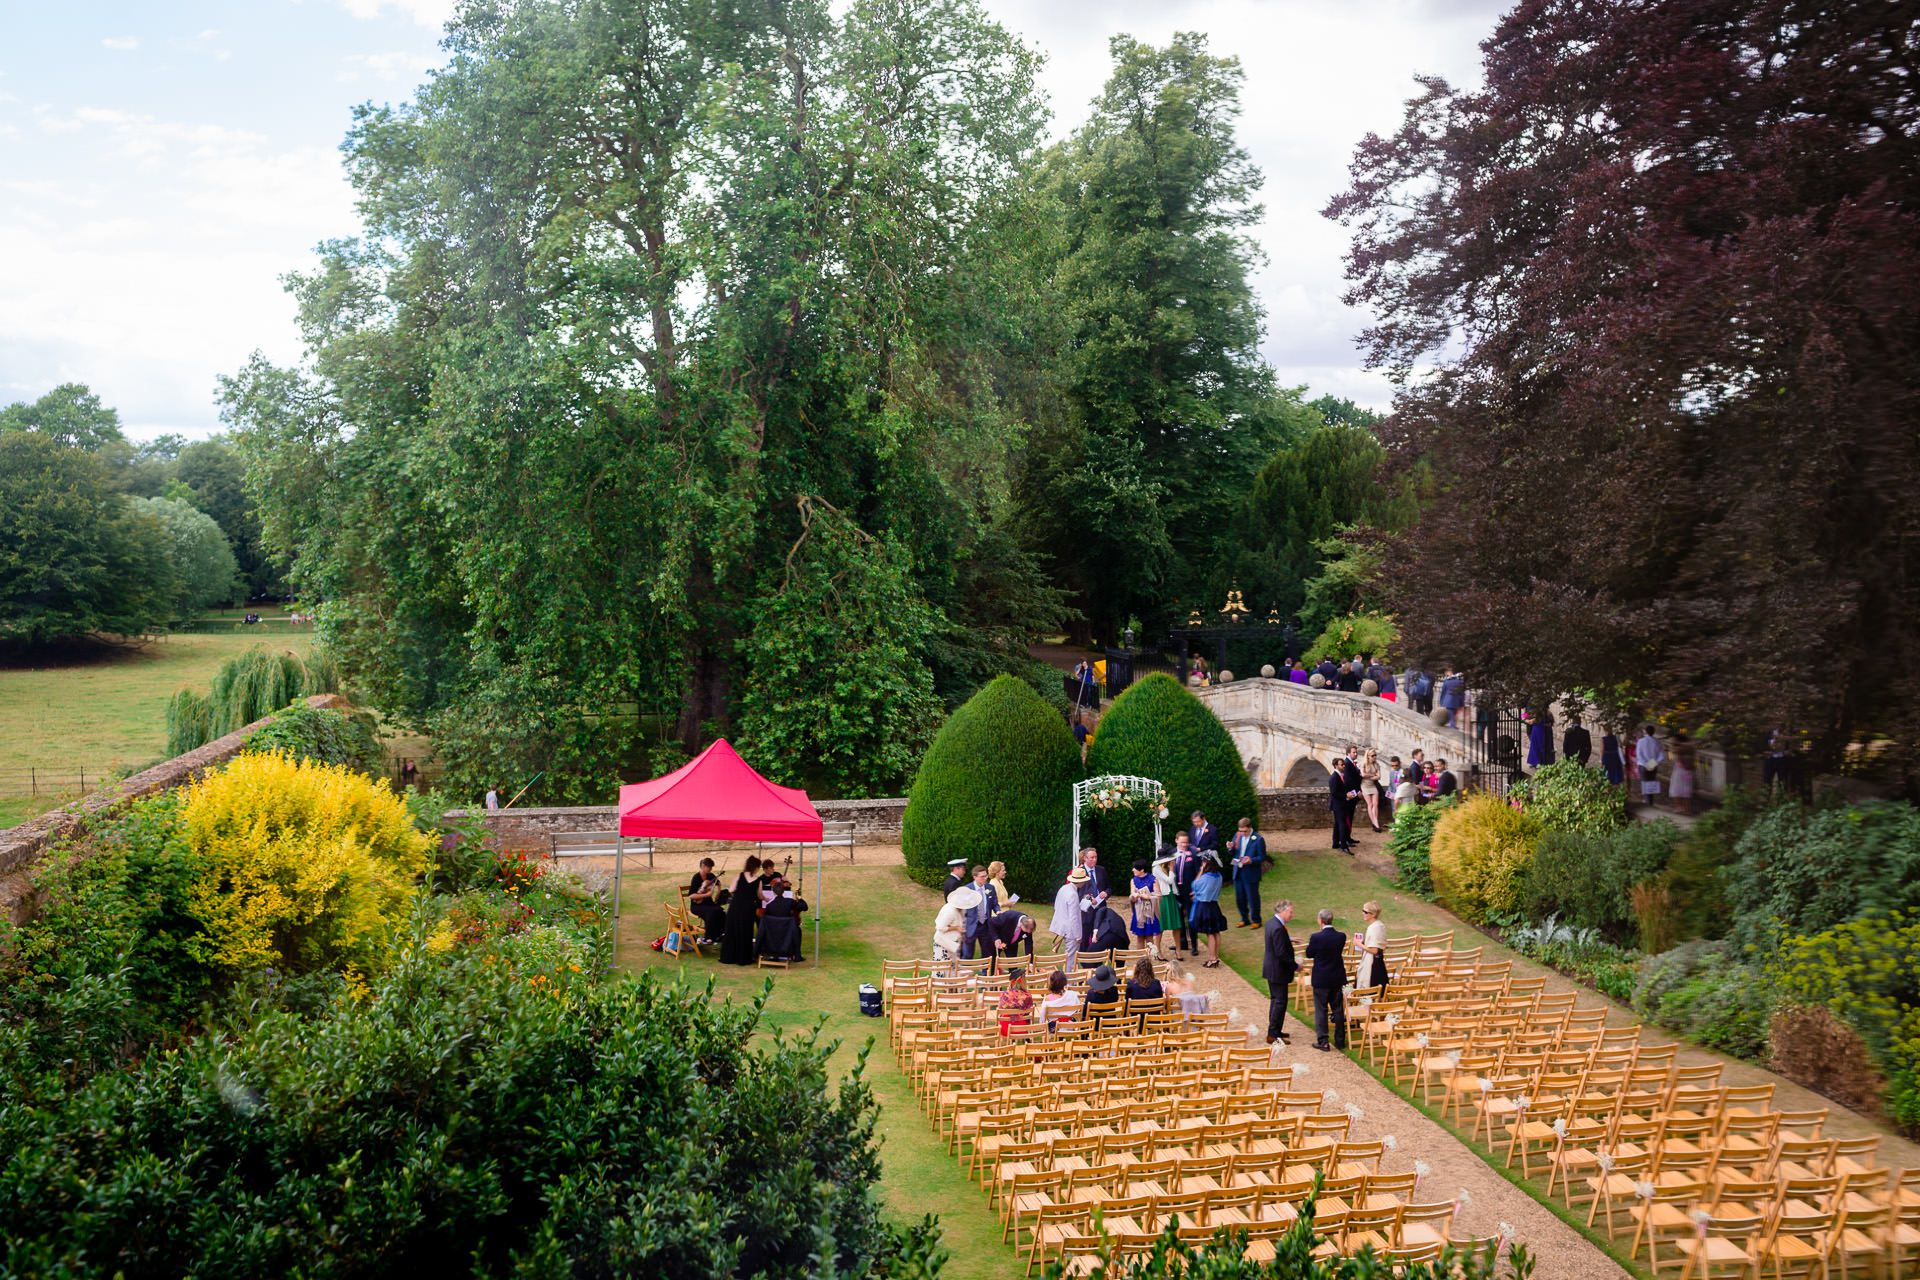 begining of the wedding london ceremony in the beautiful garden